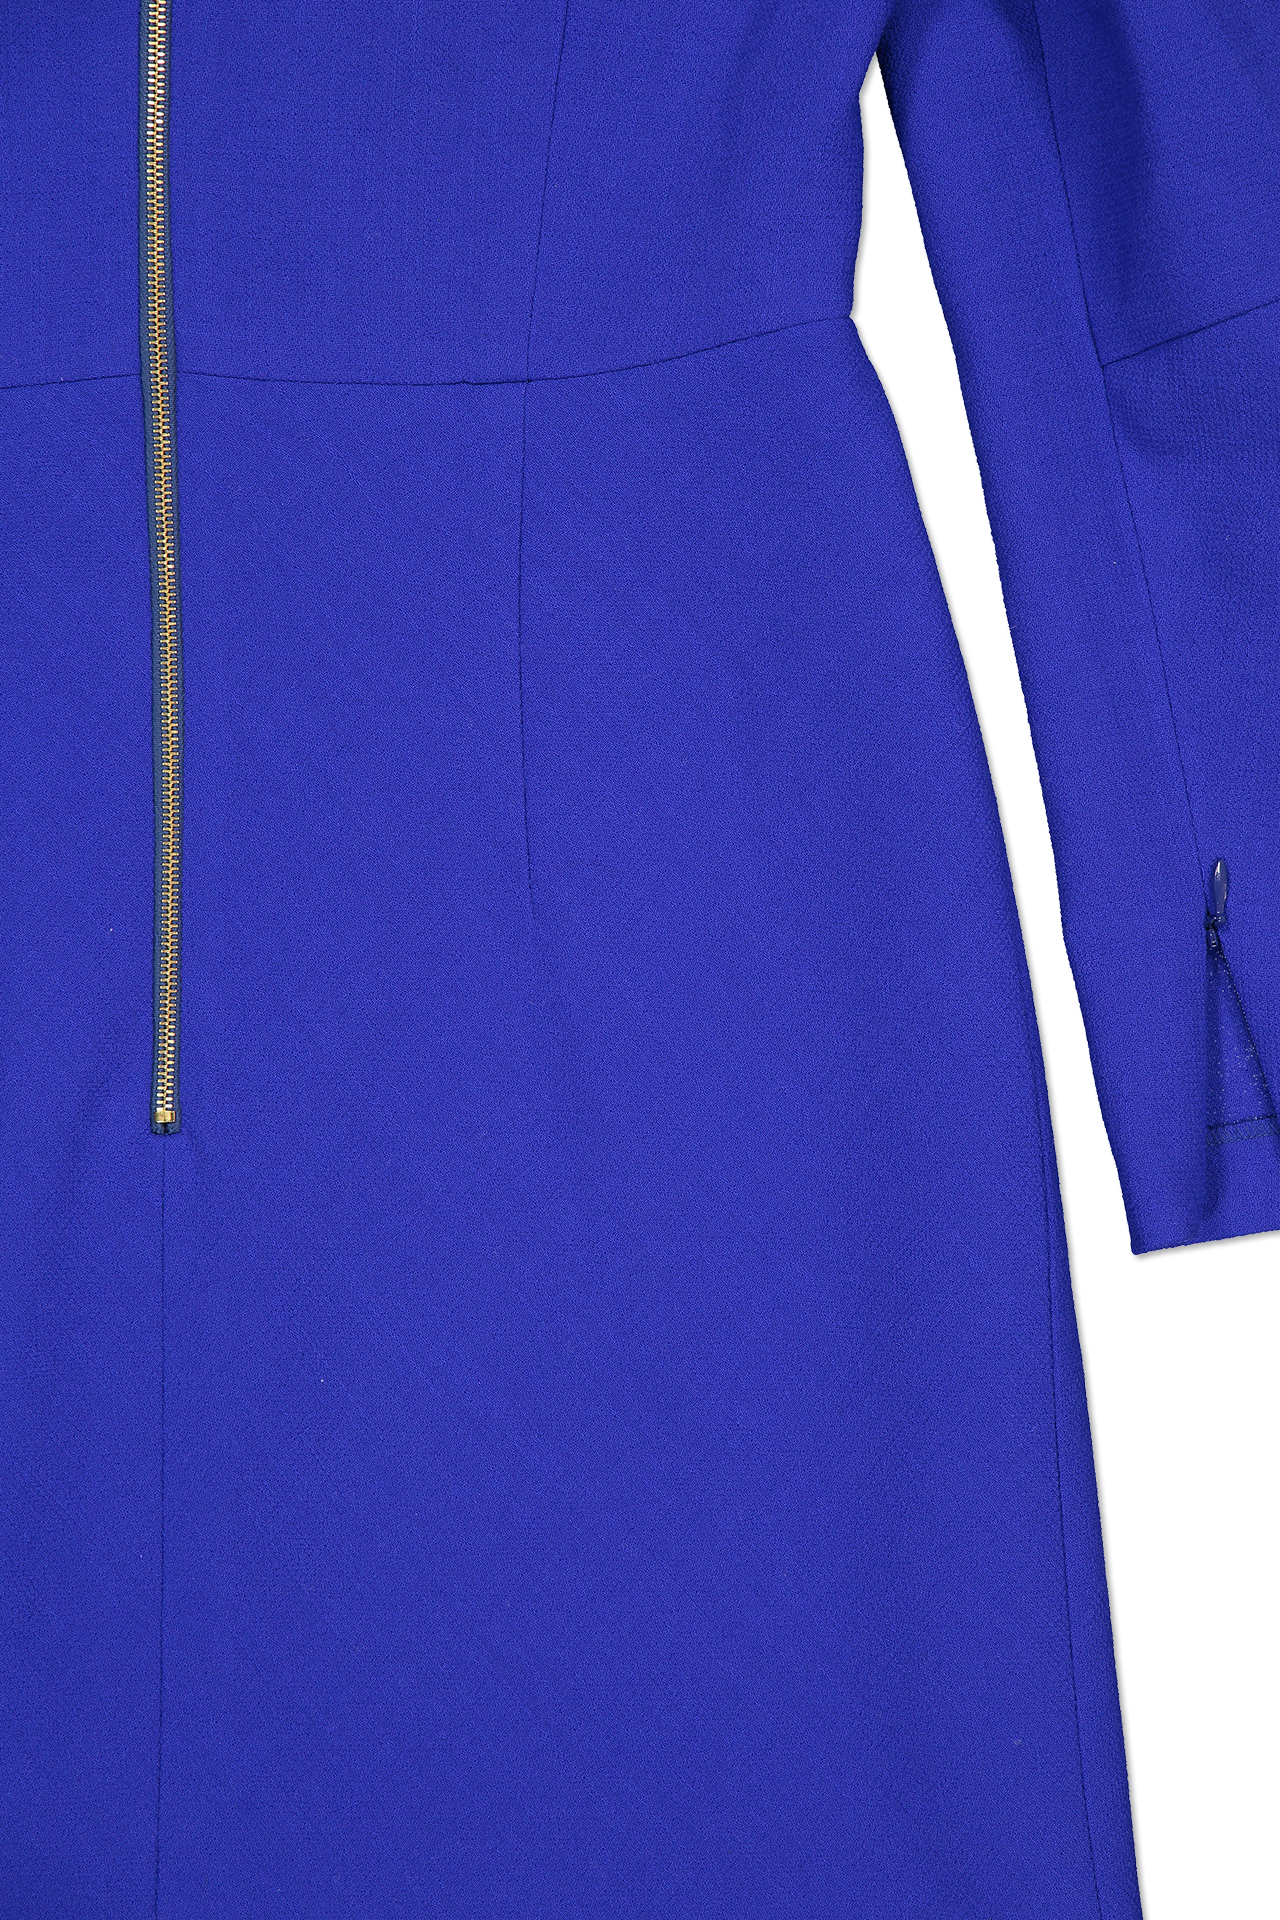 Side hem and cuff slit detail image of Escada Dllea Dress